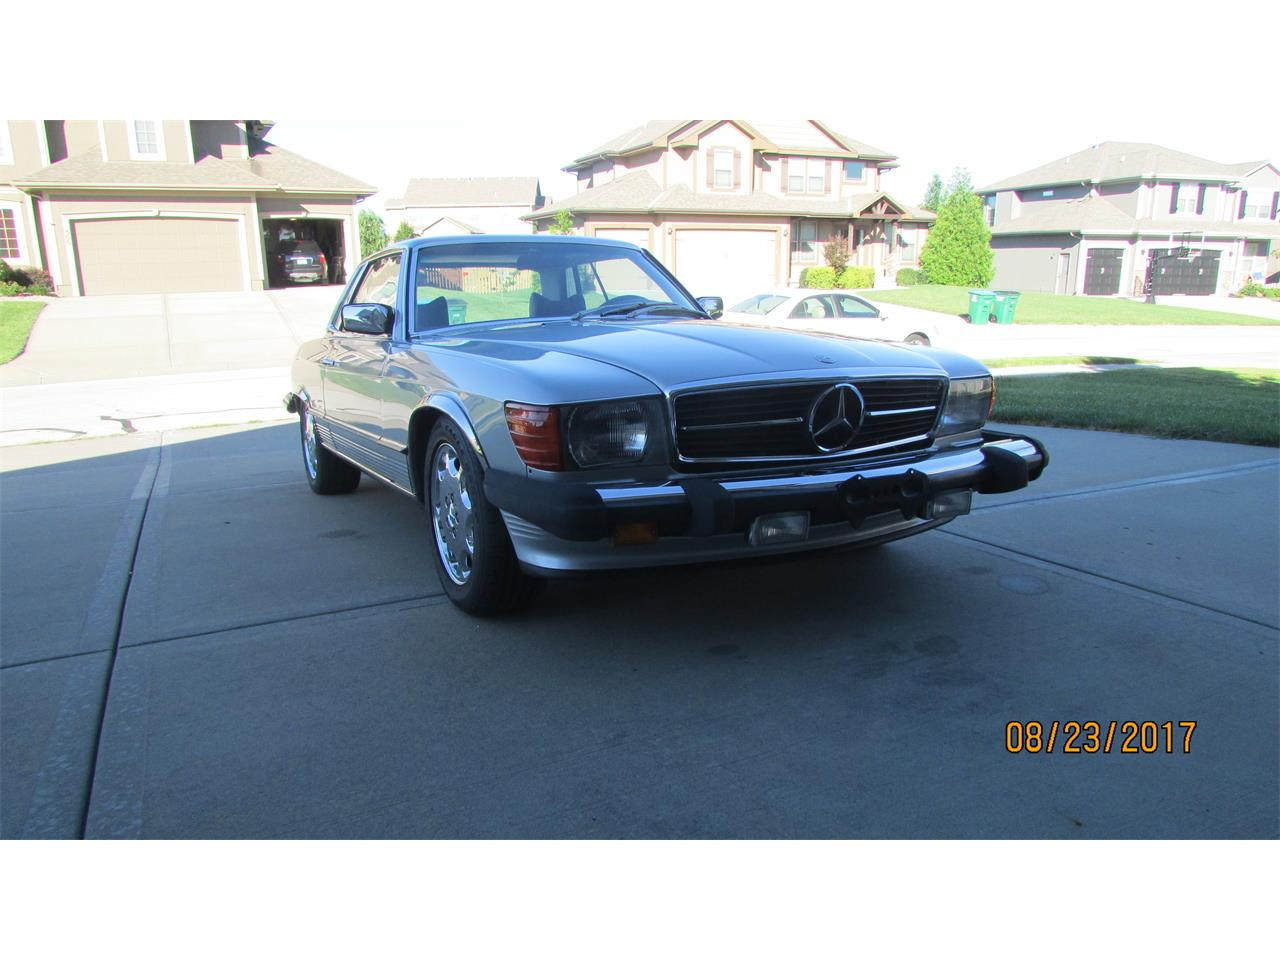 Large Picture of 1979 SL-Class located in Missouri Offered by a Private Seller - M6OQ